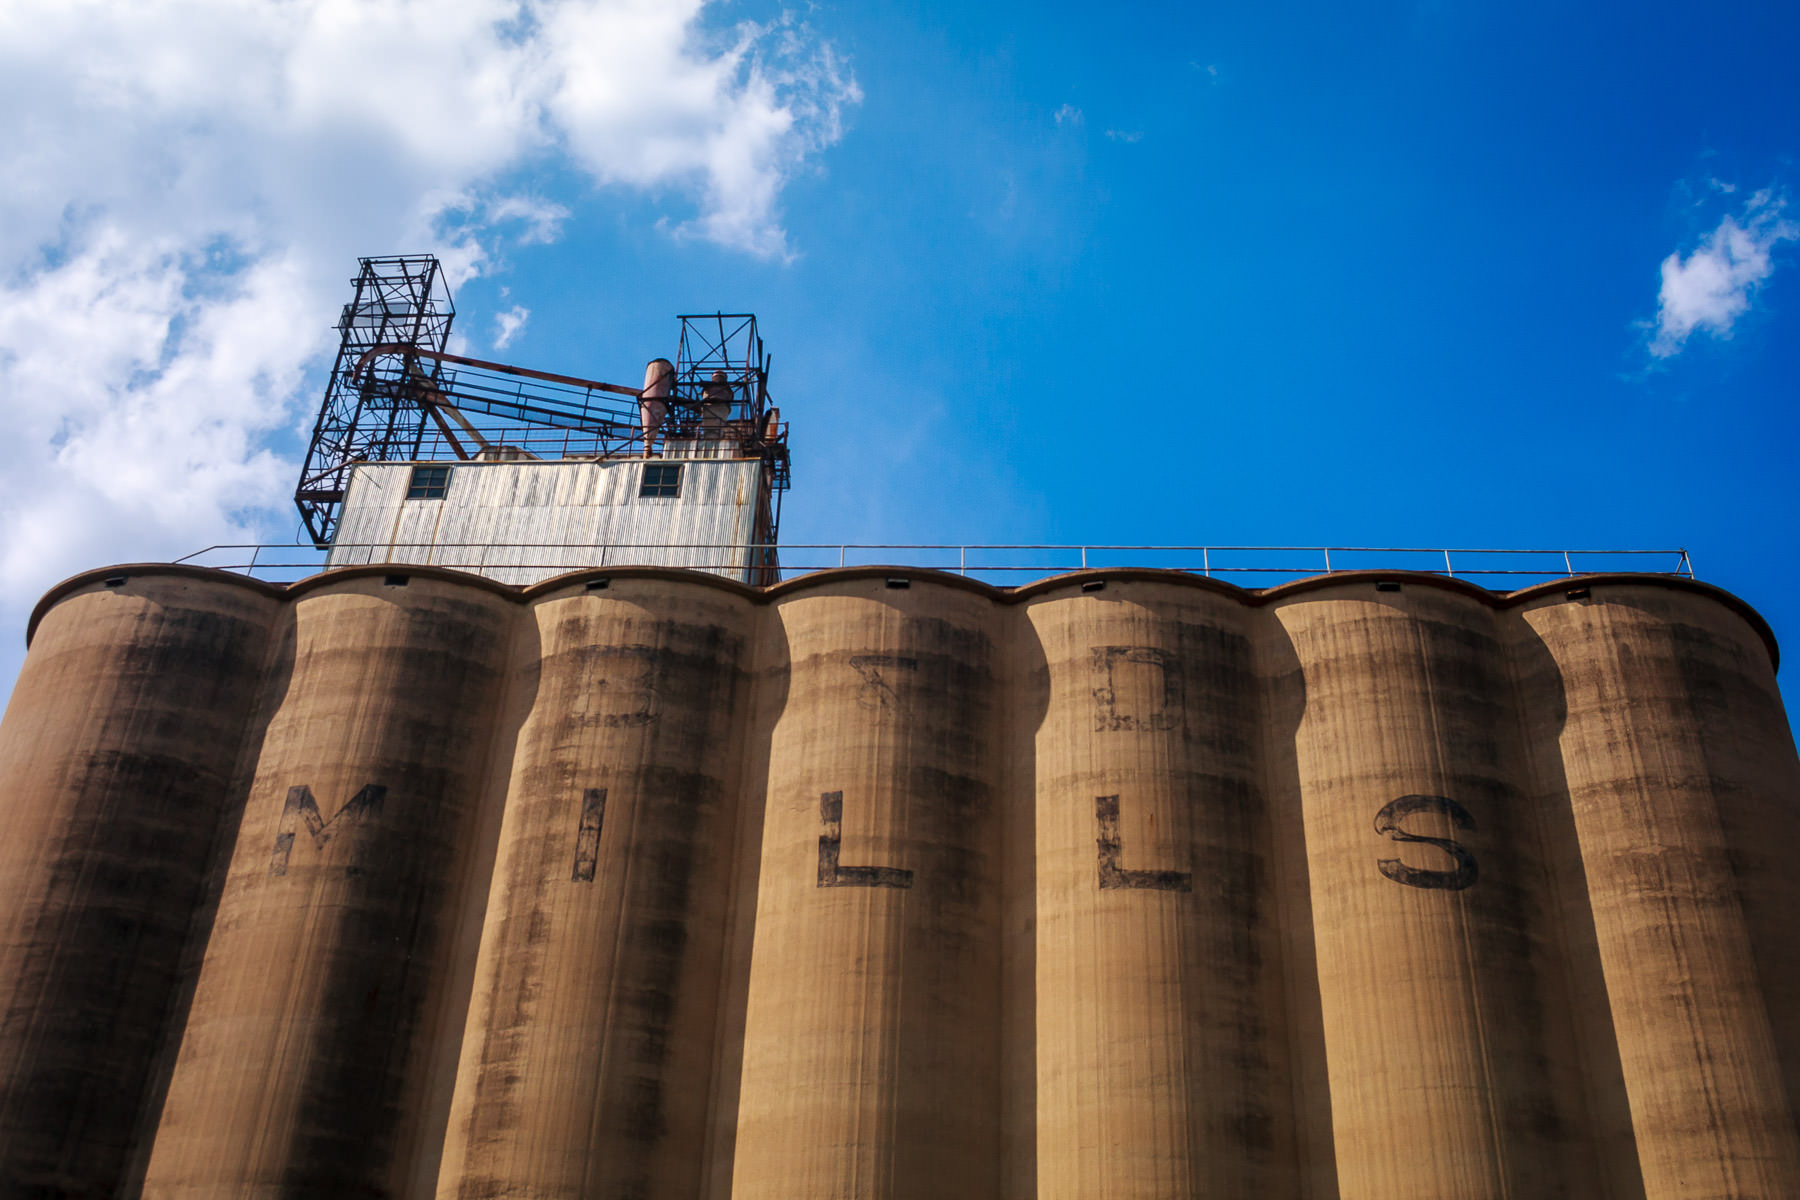 Old grain silos in Grapevine, Texas.